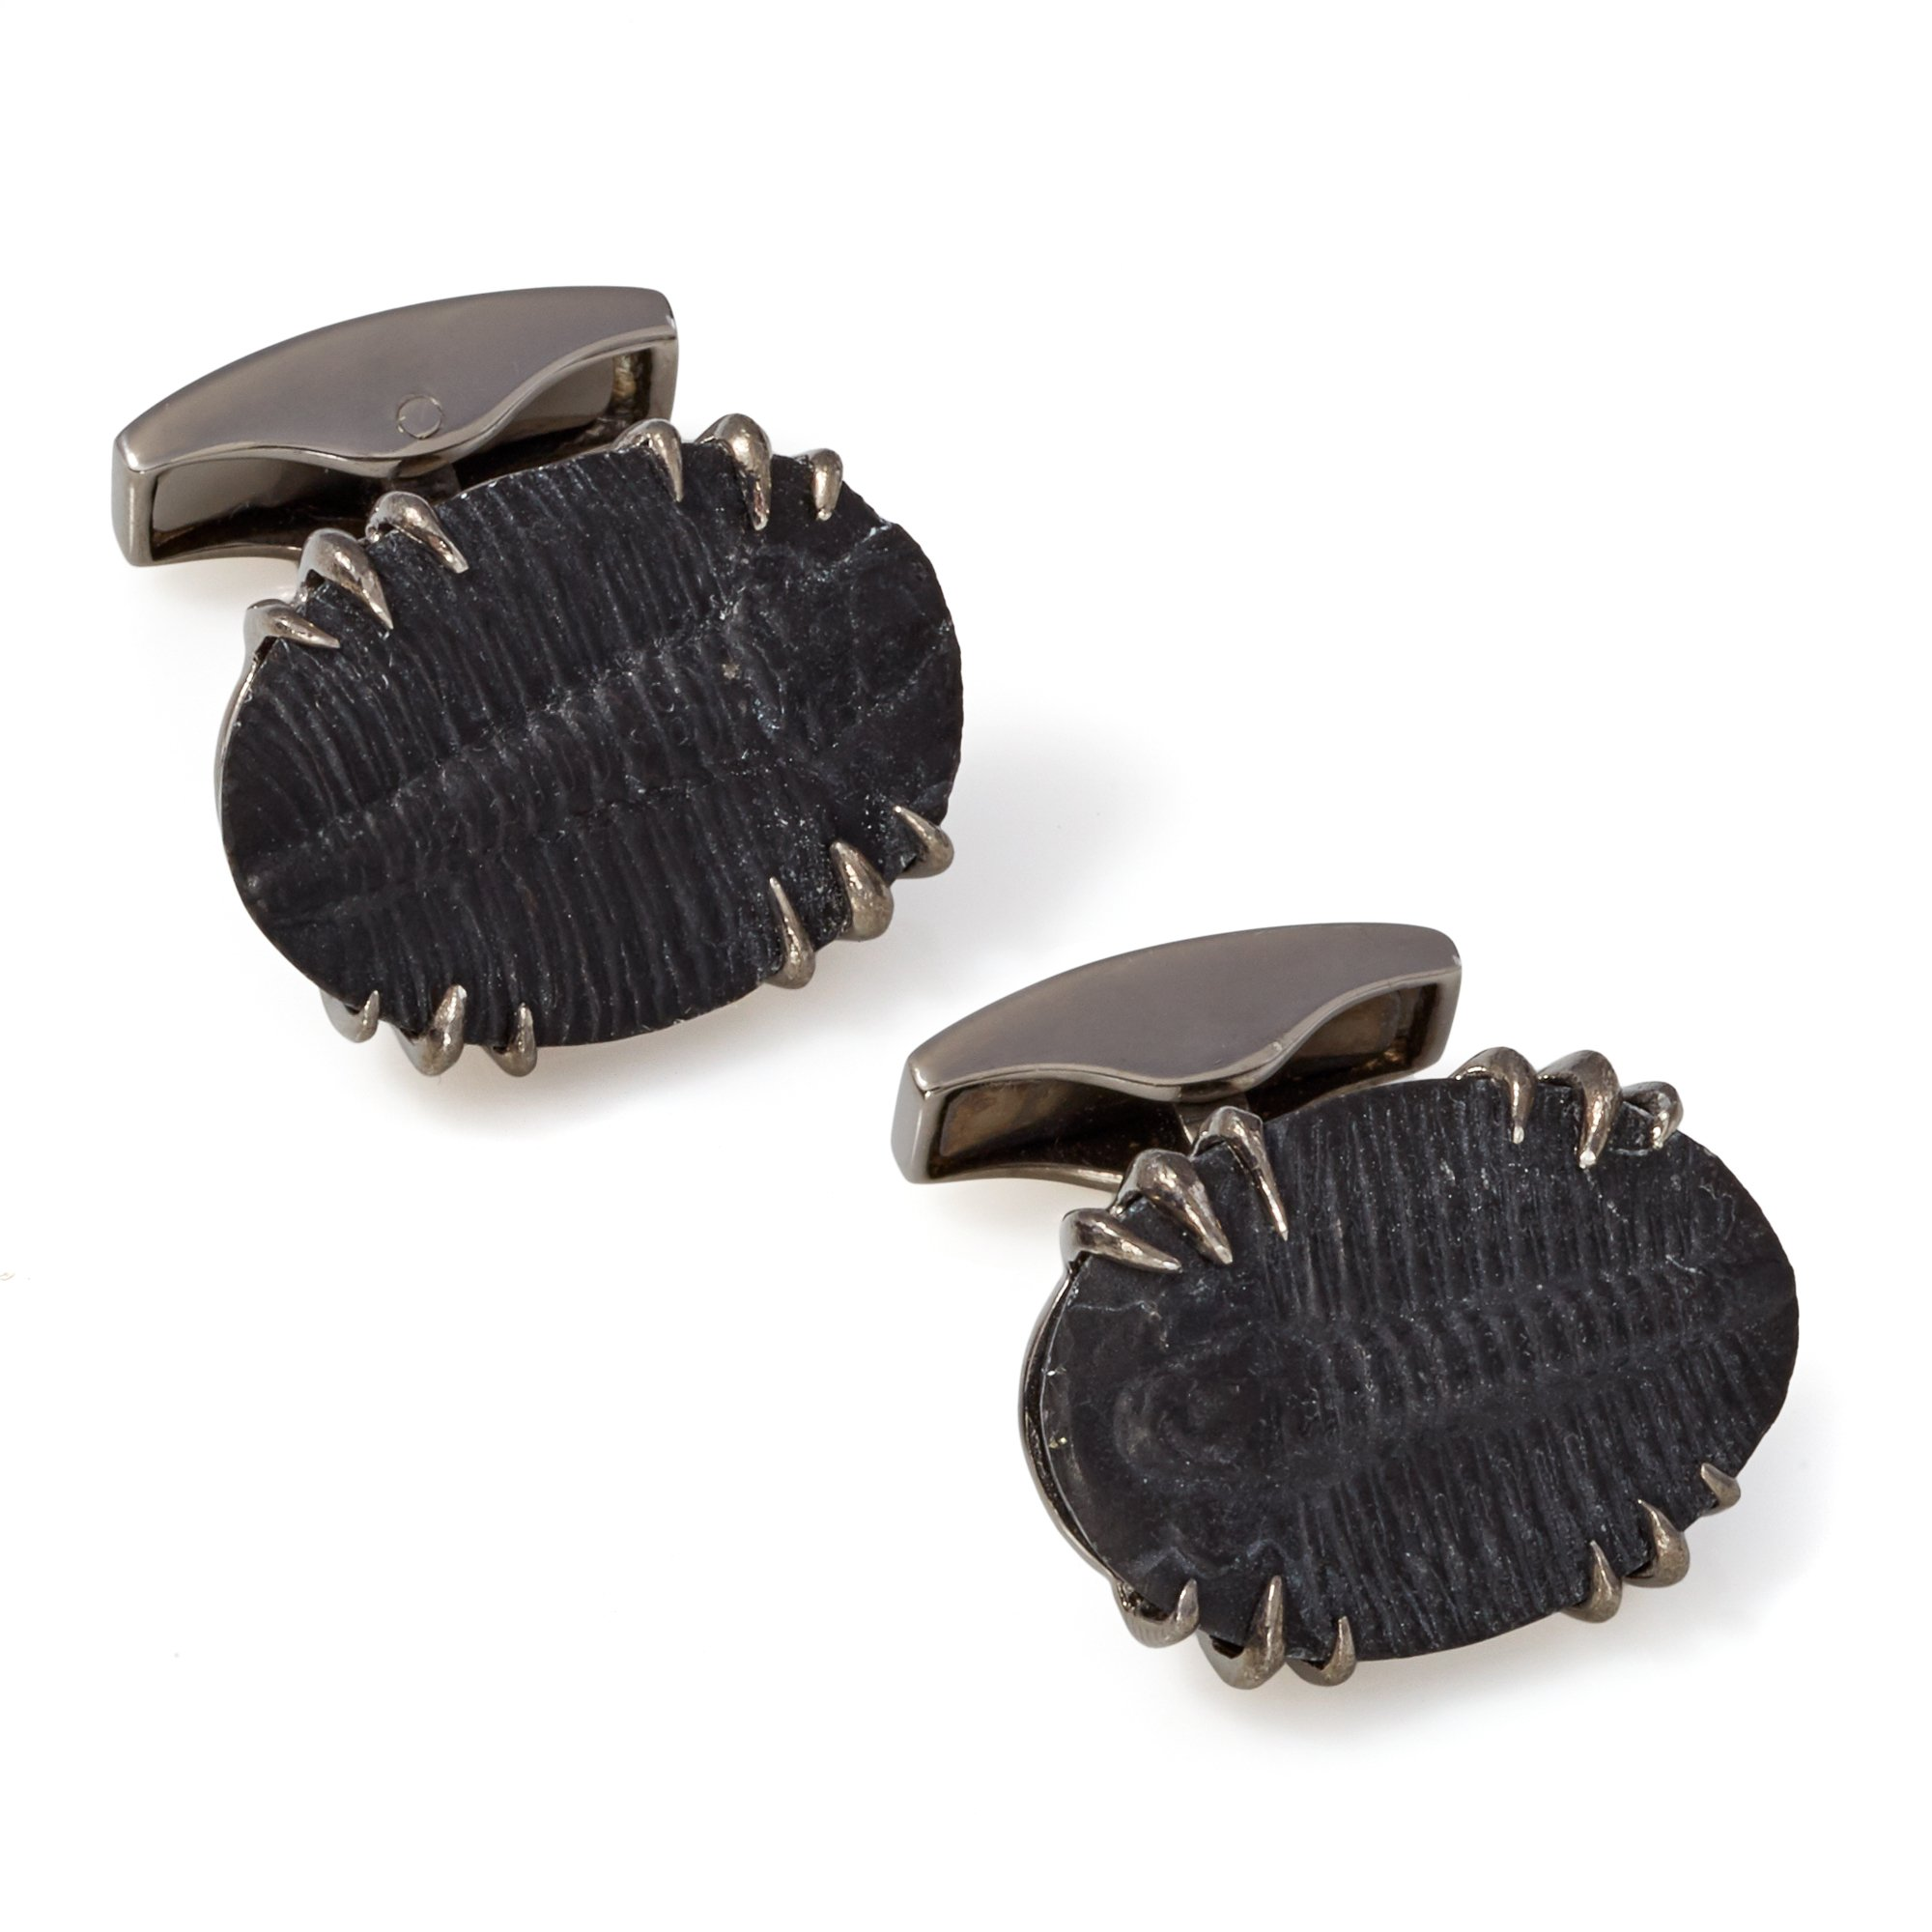 Tateossian Stones of the World Limited Edition Silver Fossil Coral Cufflinks by Tateossian